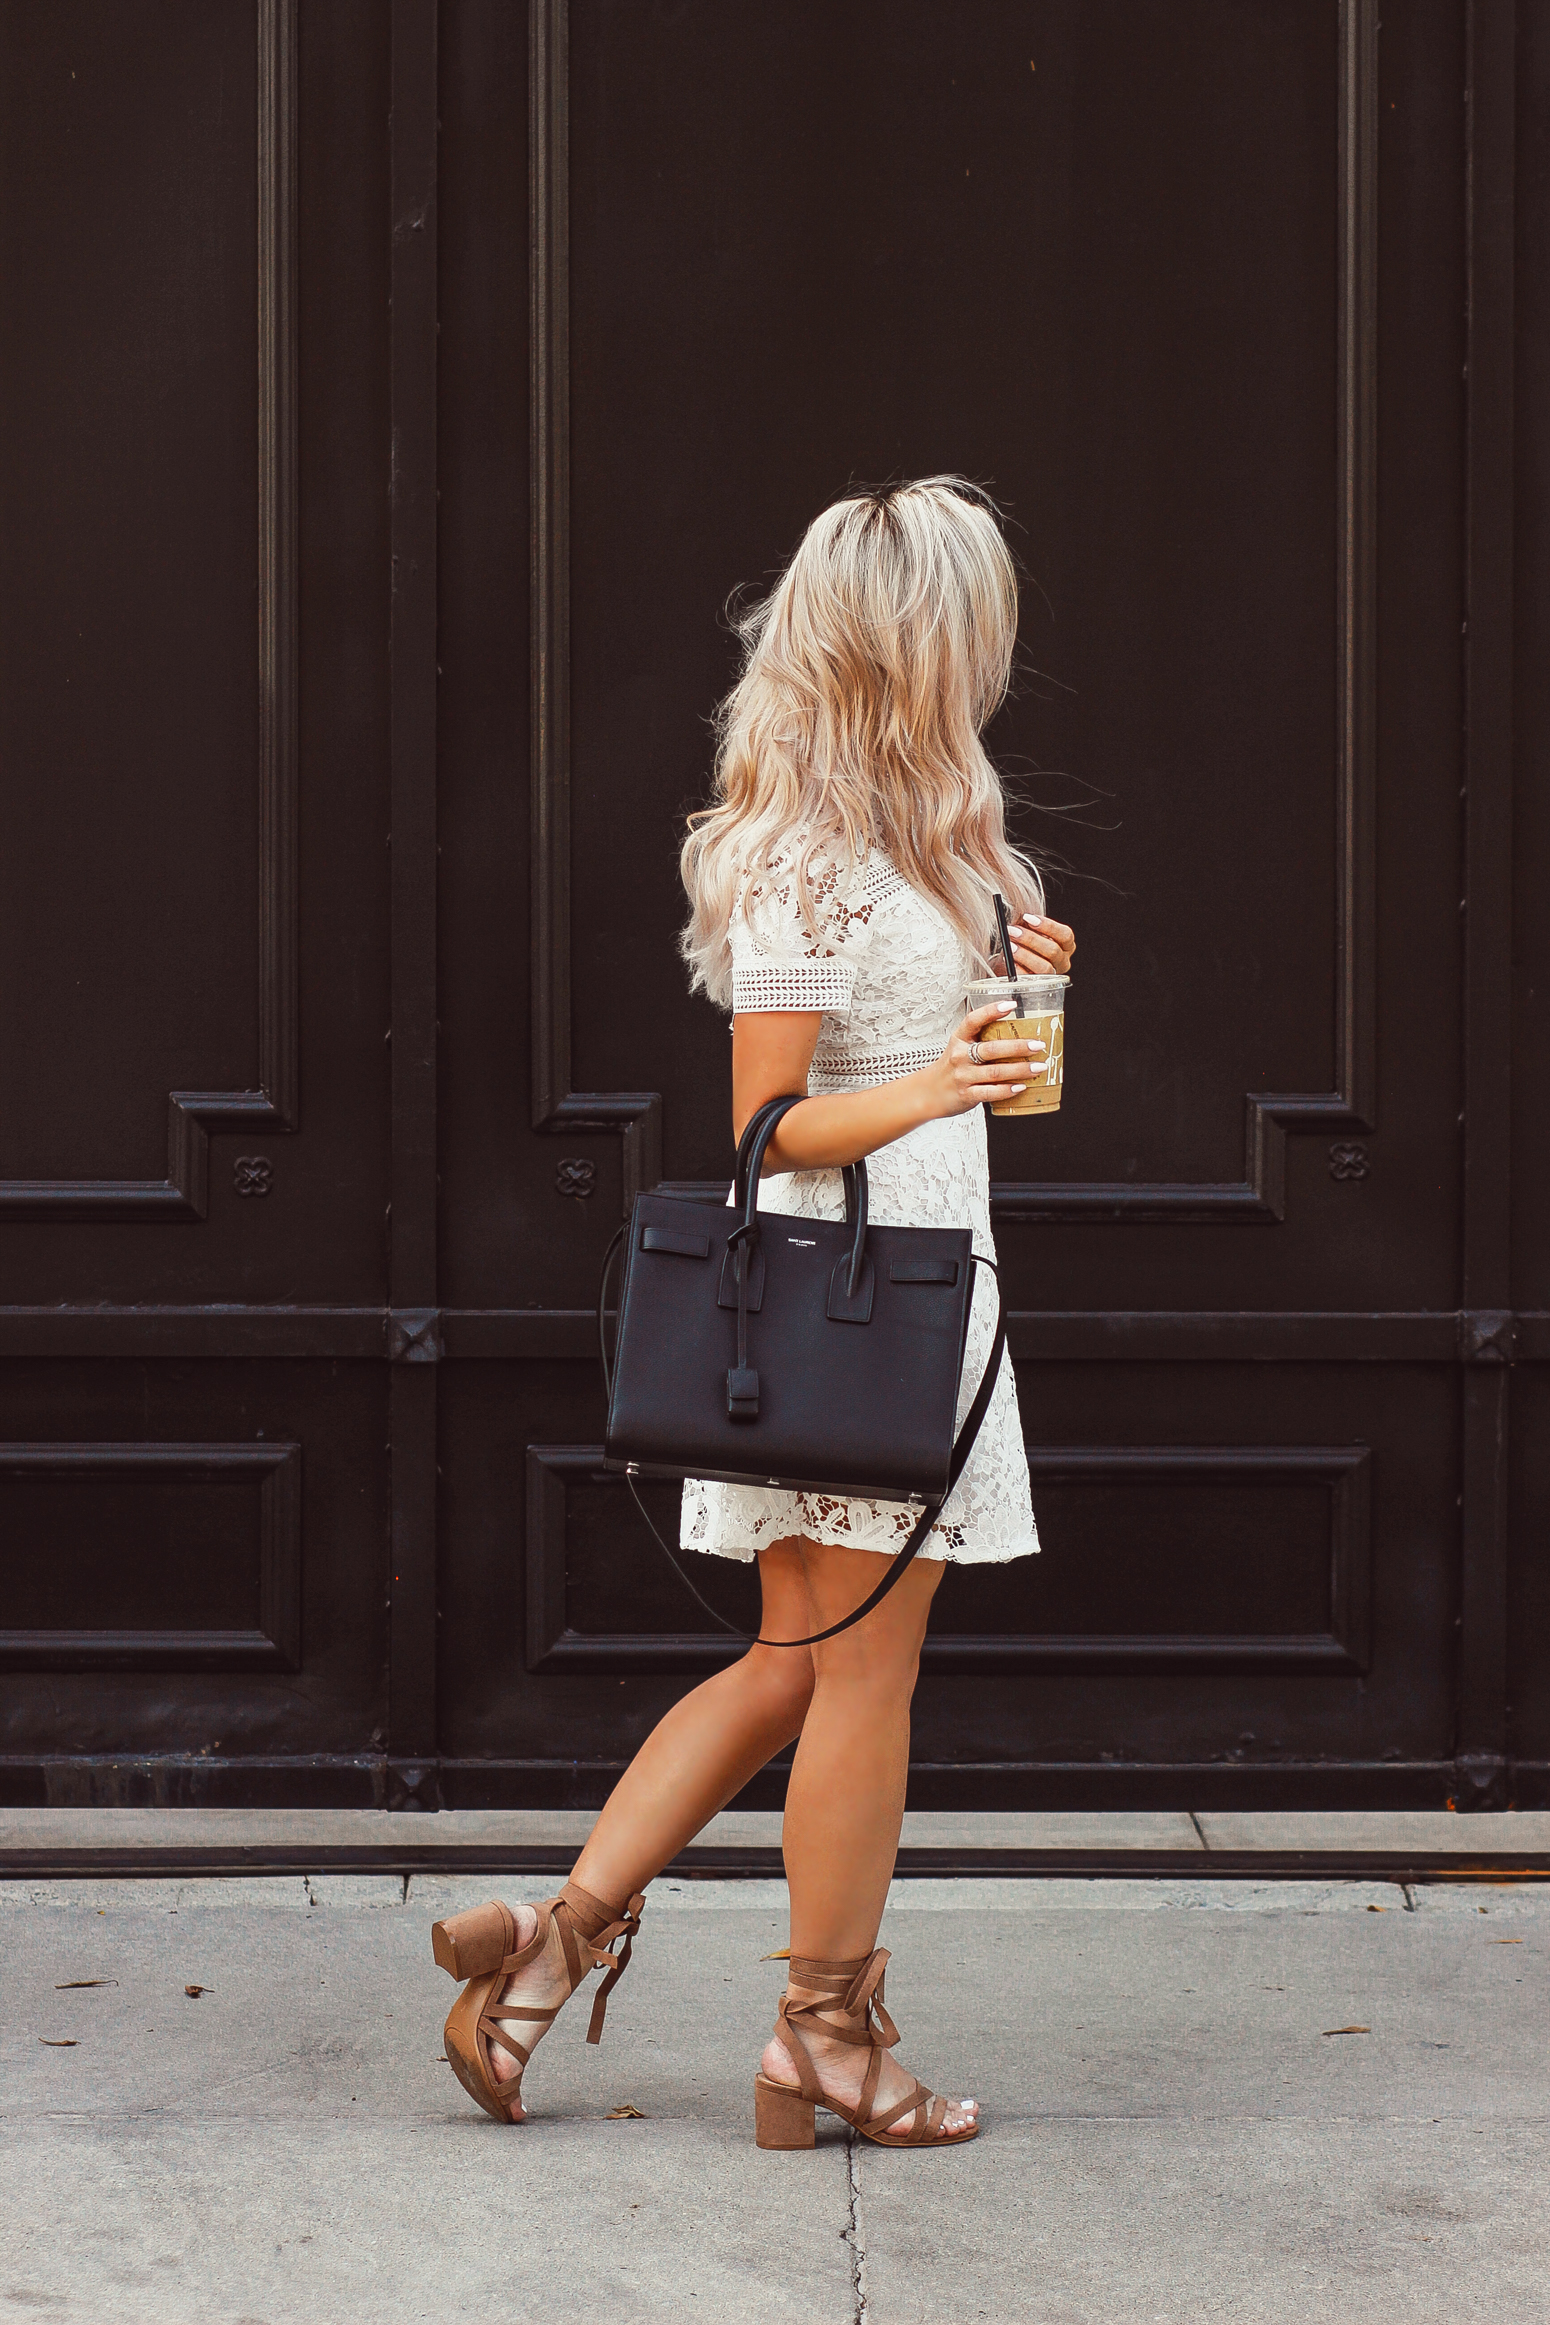 blondie in the city white lace bridal shower dress chiciwsh ysl bag